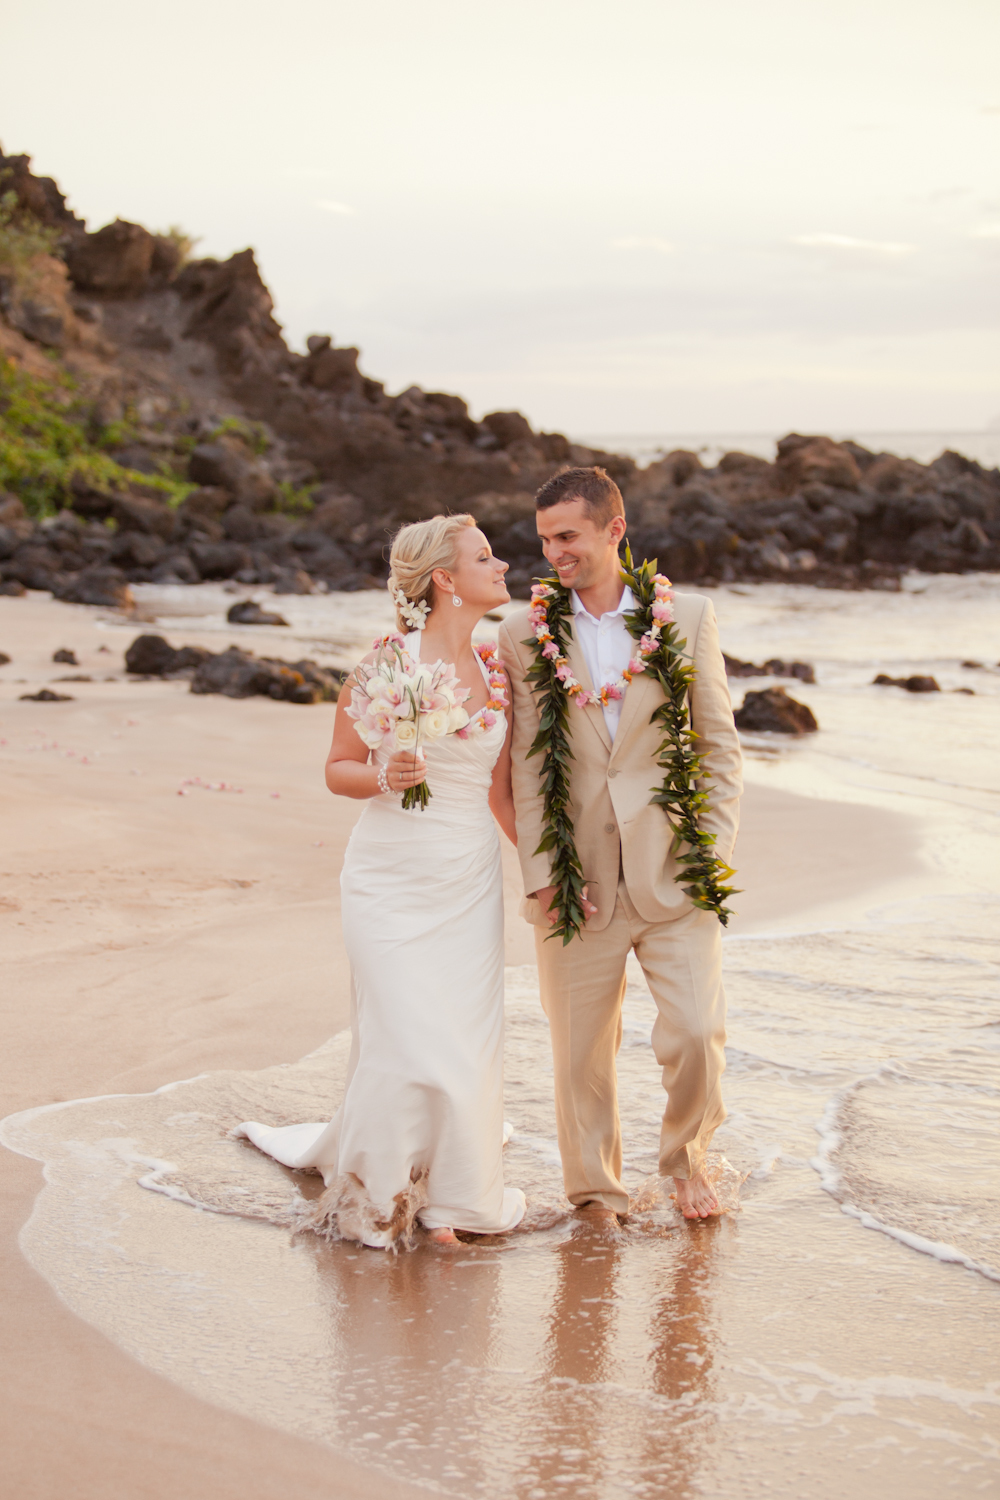 Maui-bride-and-groom-walk-hand-in-hand-on-beach.full